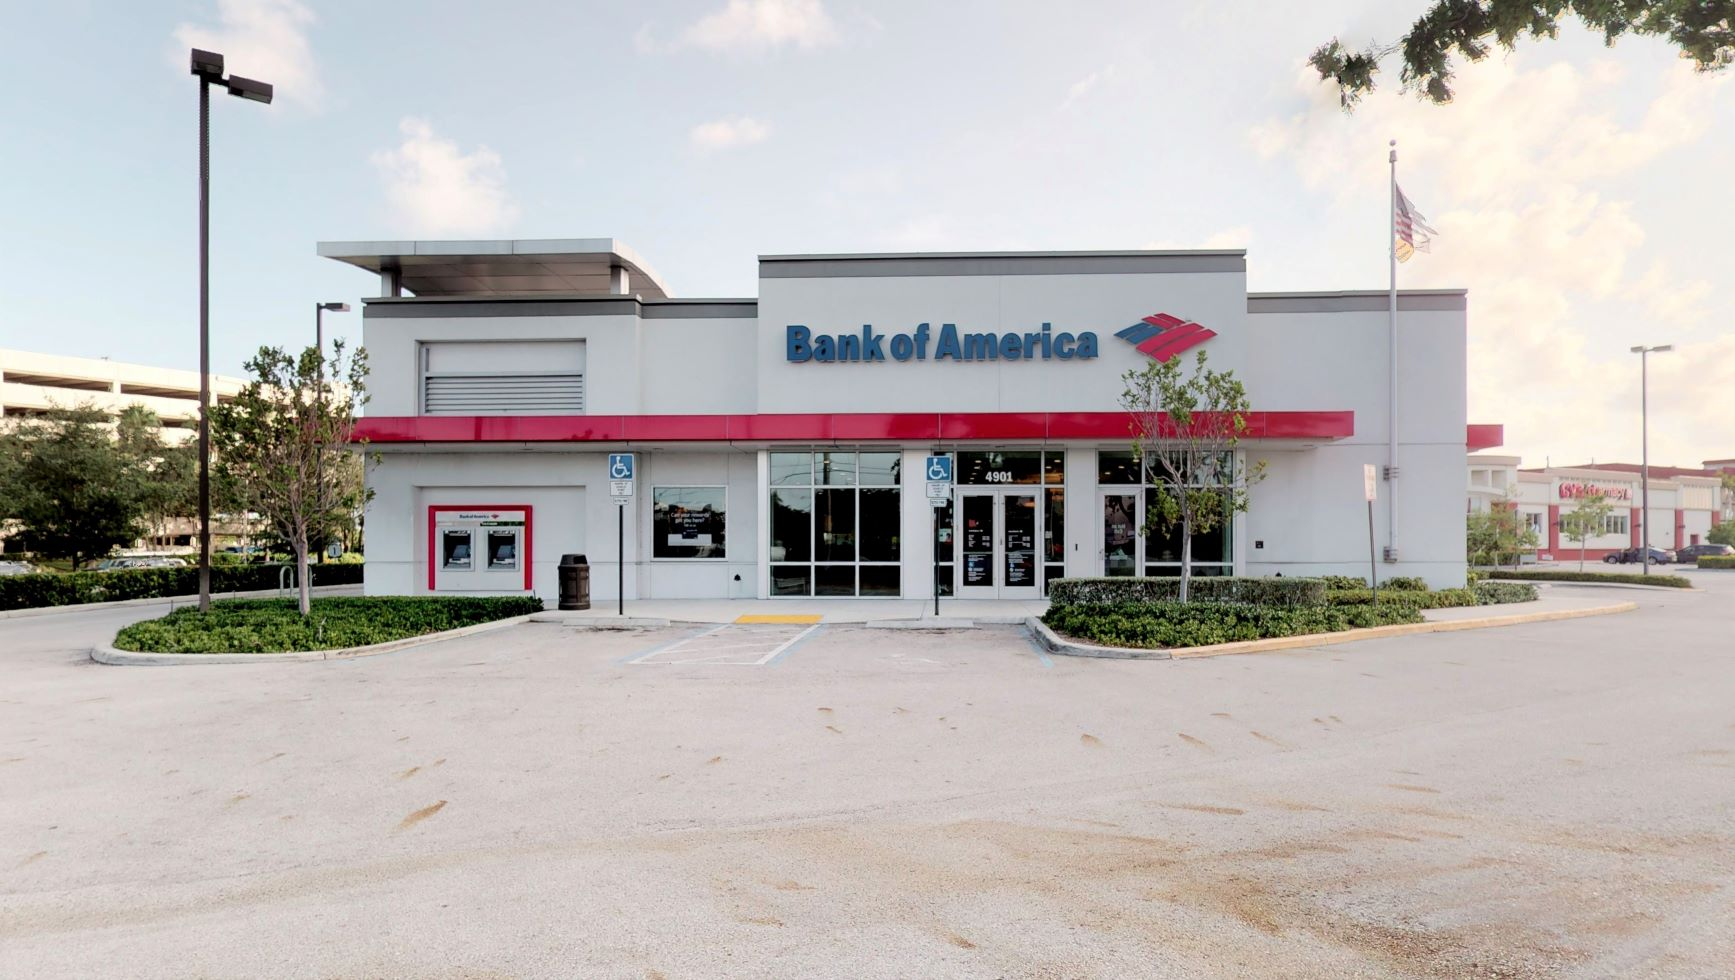 Bank of America financial center with drive-thru ATM   4901 N Federal Hwy, Fort Lauderdale, FL 33308